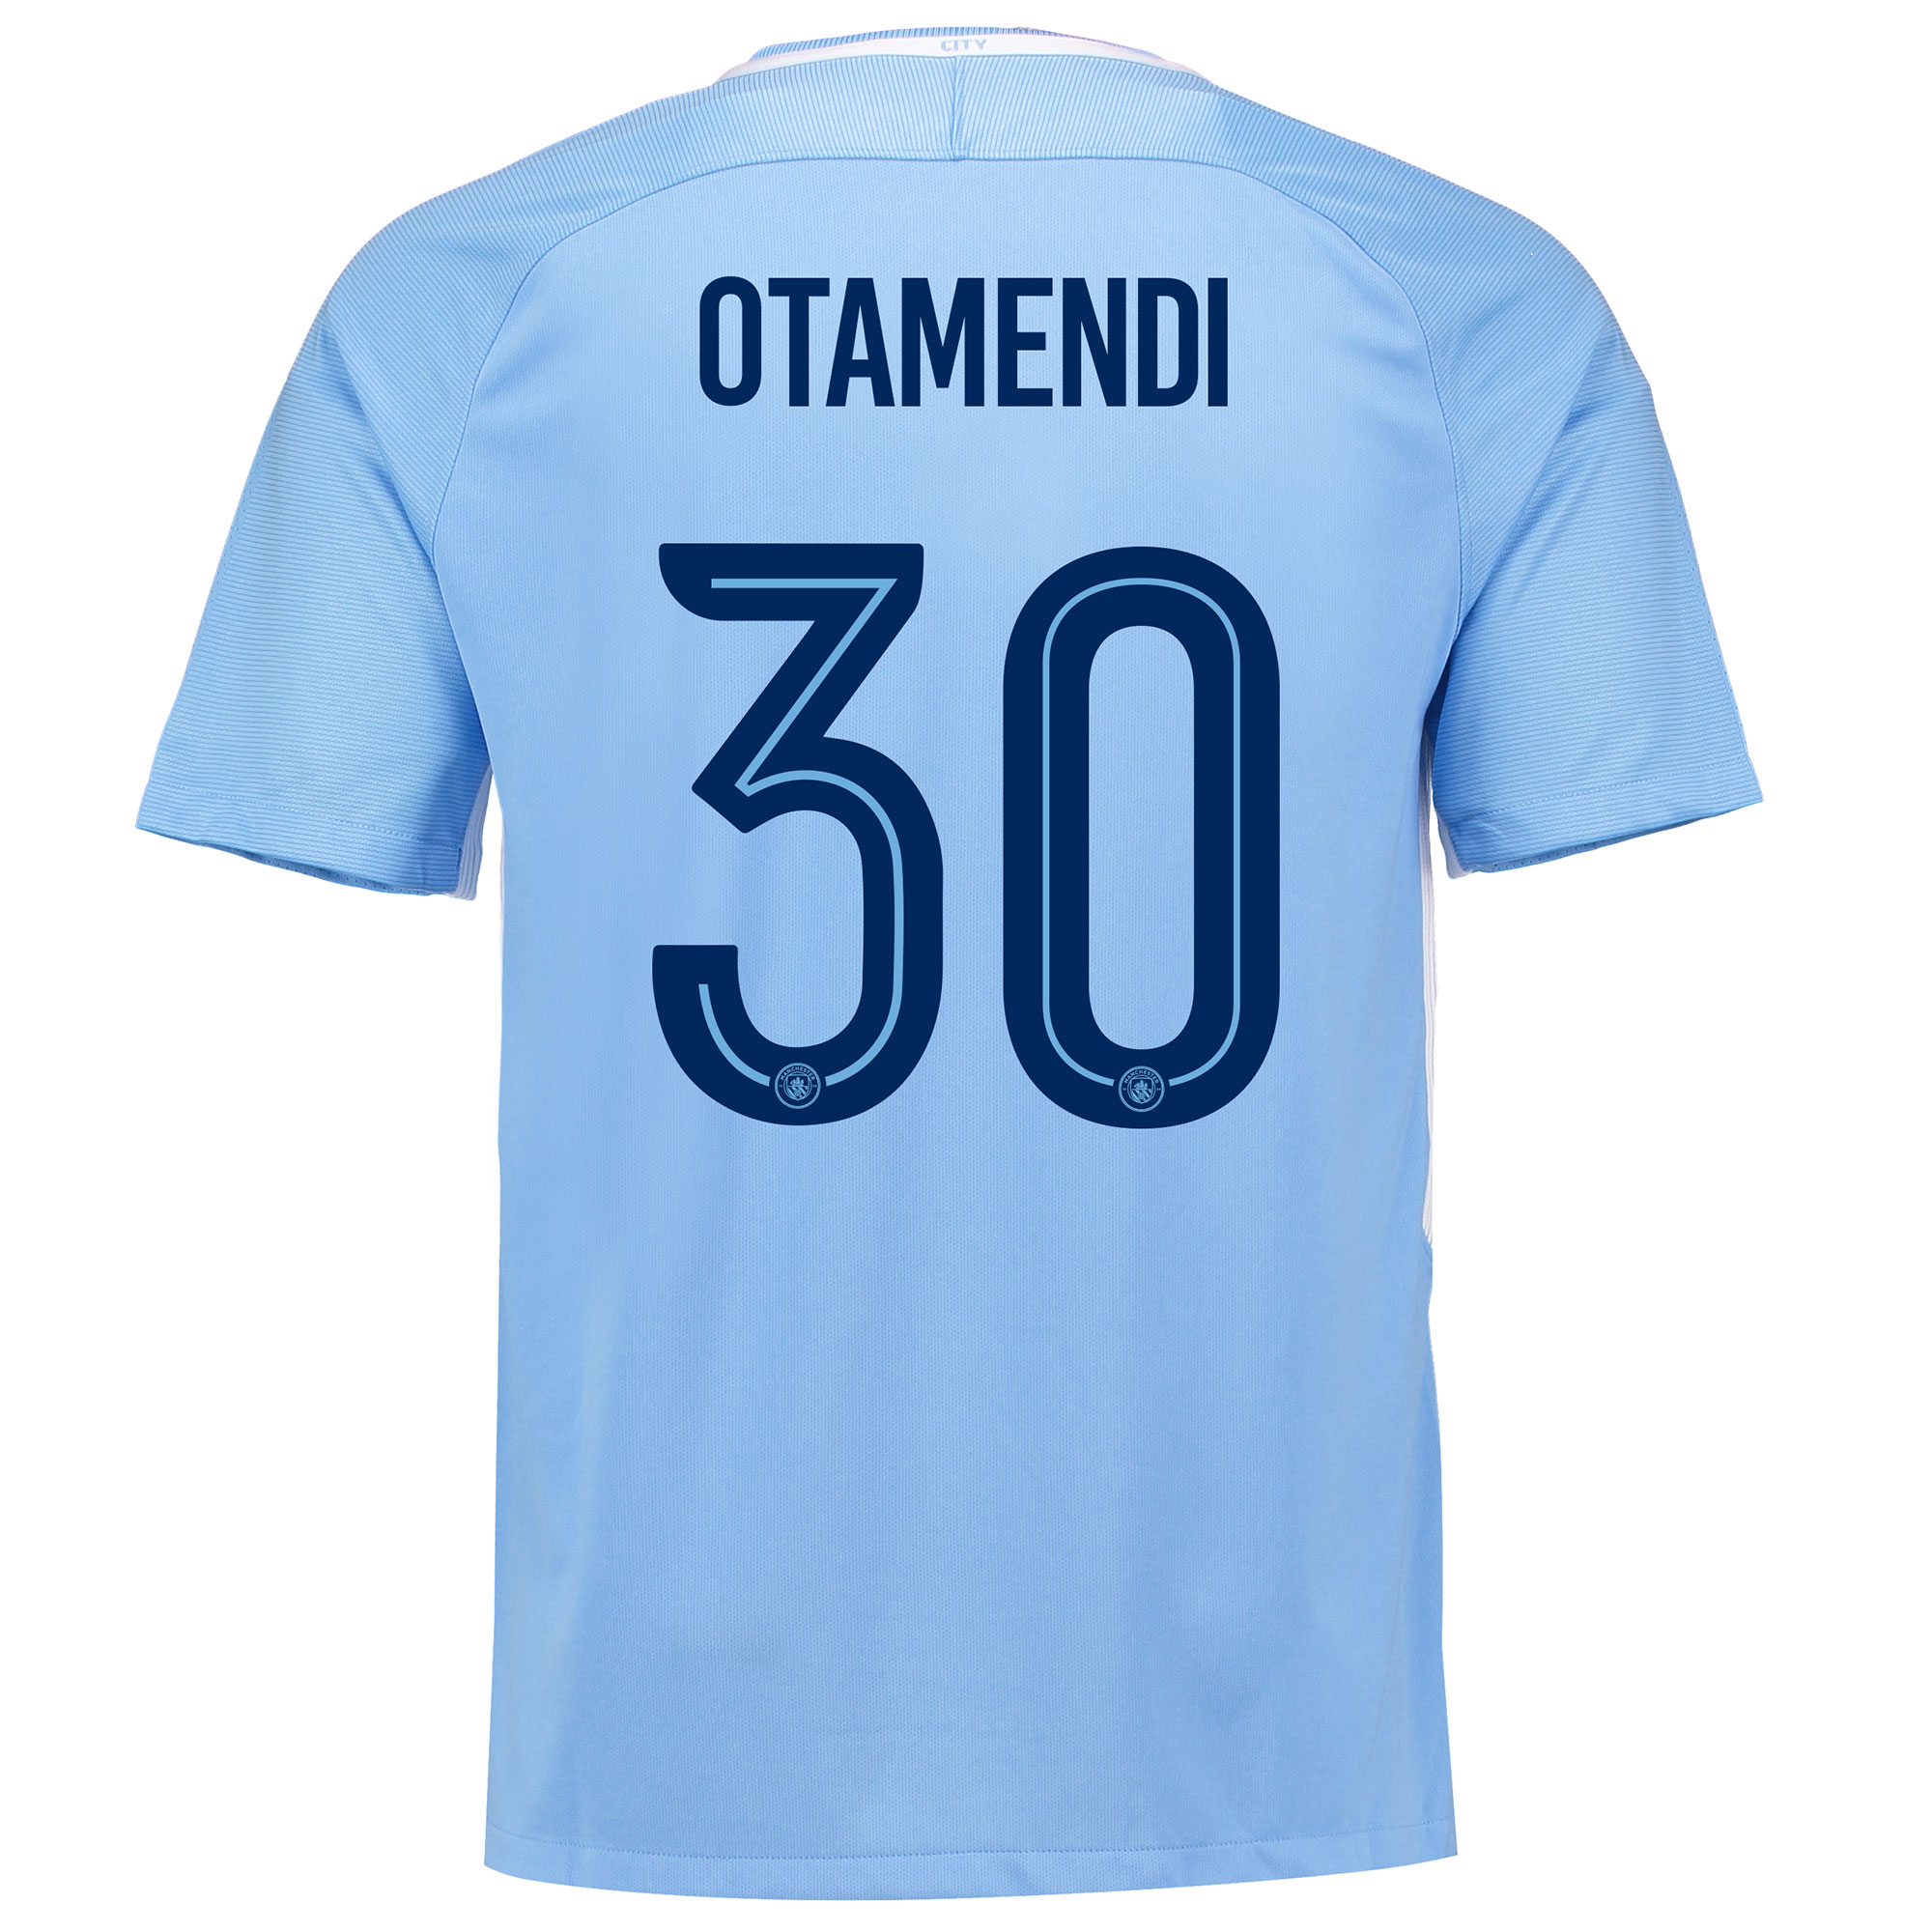 Manchester City Home Stadium Cup Shirt 2017-18 with Otamendi 30 printi